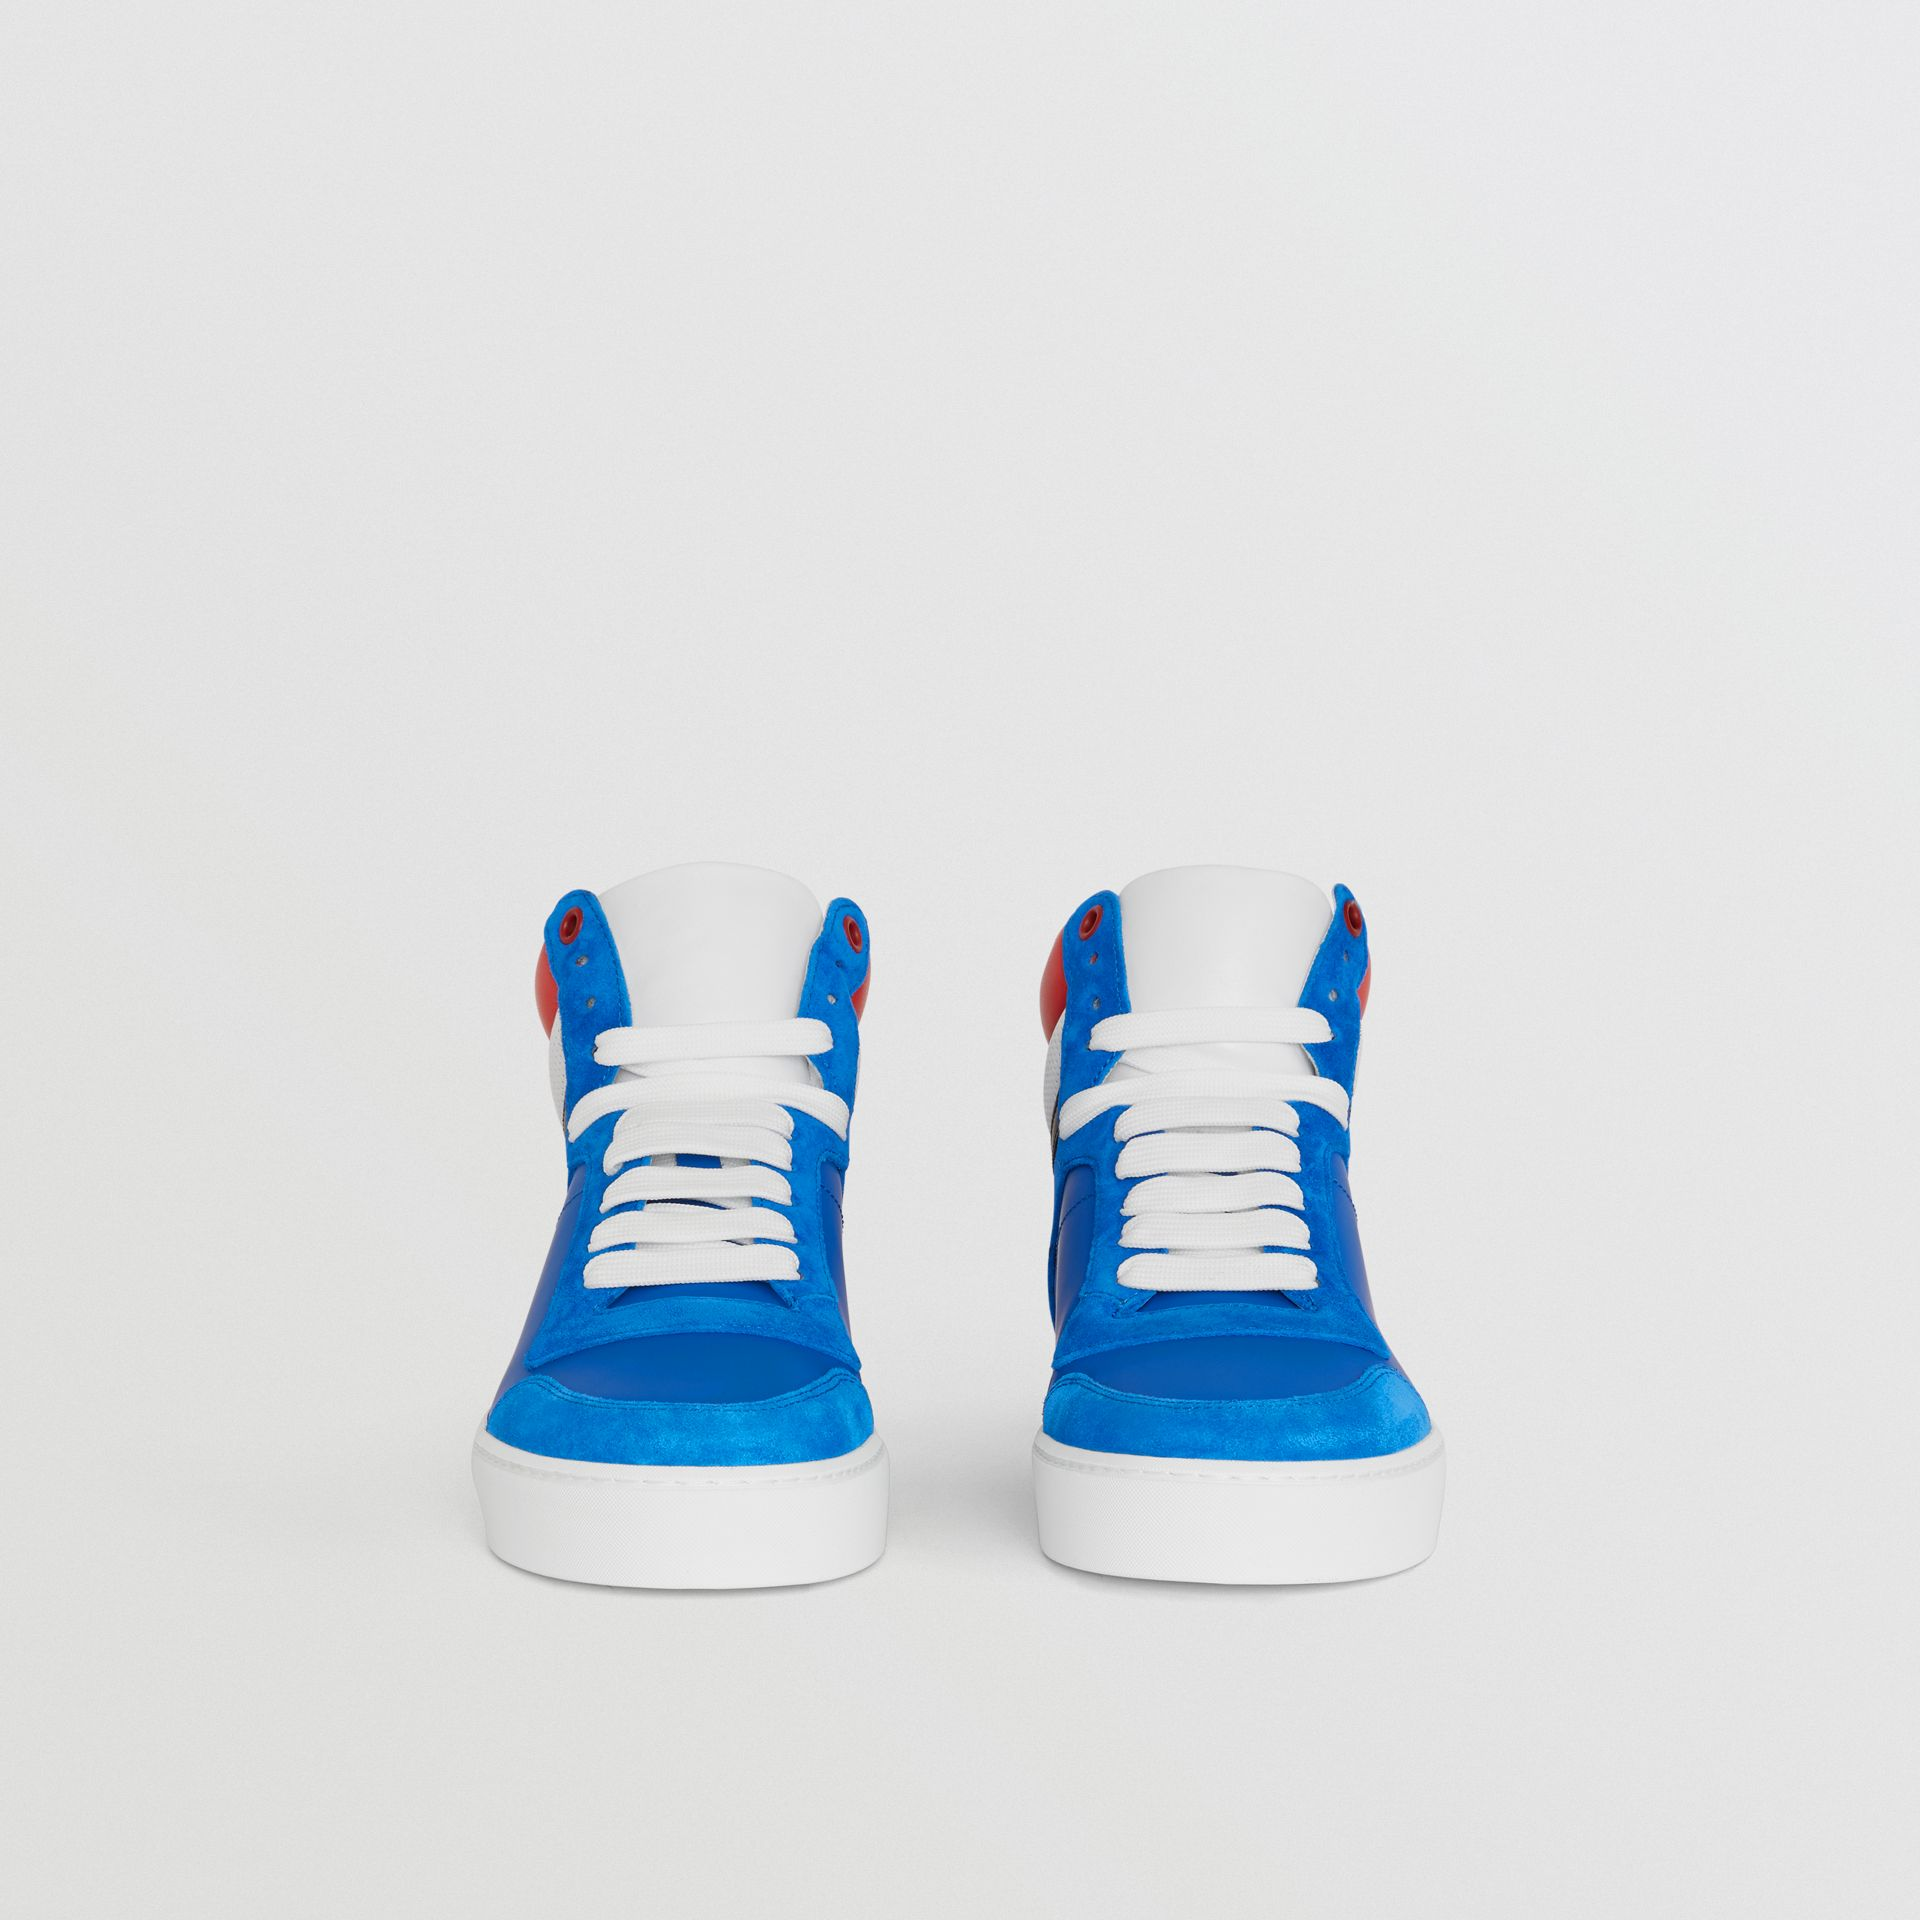 Leather and Suede High-top Sneakers in Bright Sky Blue - Women | Burberry - gallery image 3